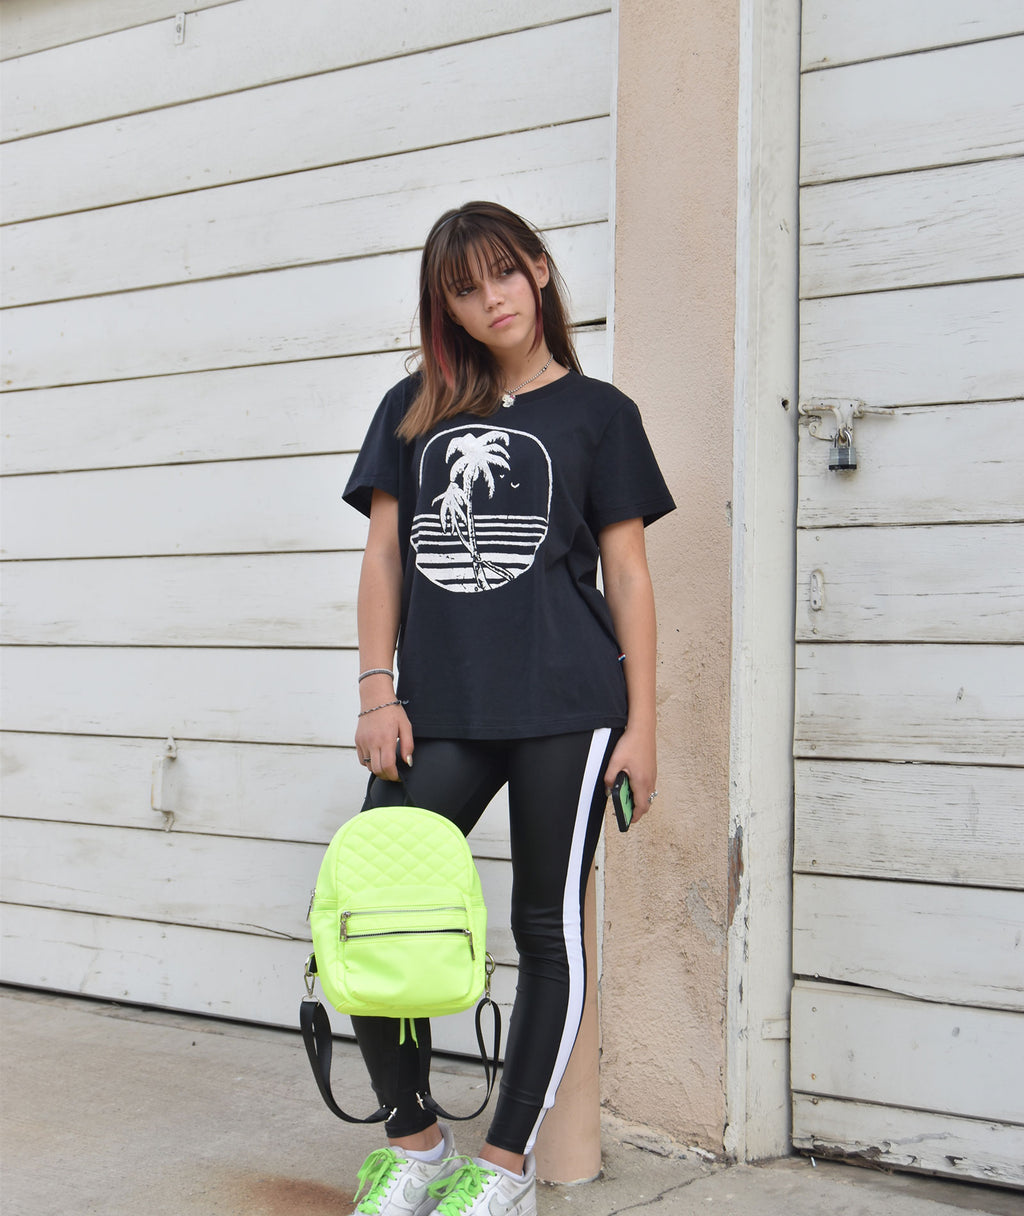 Fashionista J Neon Mini Backpack